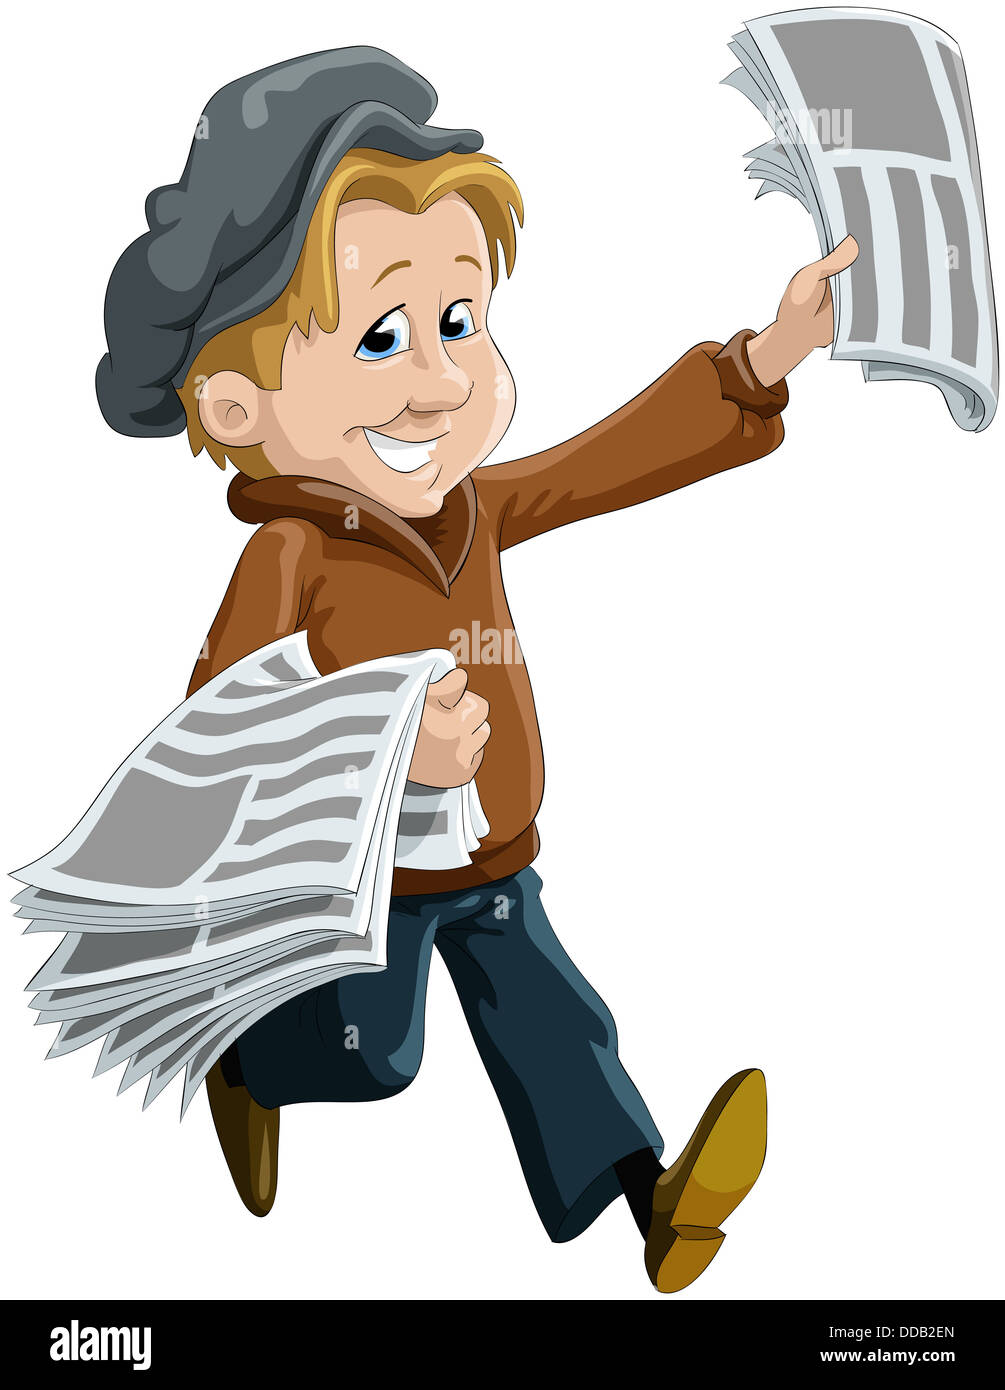 The child the messenger of newspapers Stock Photo